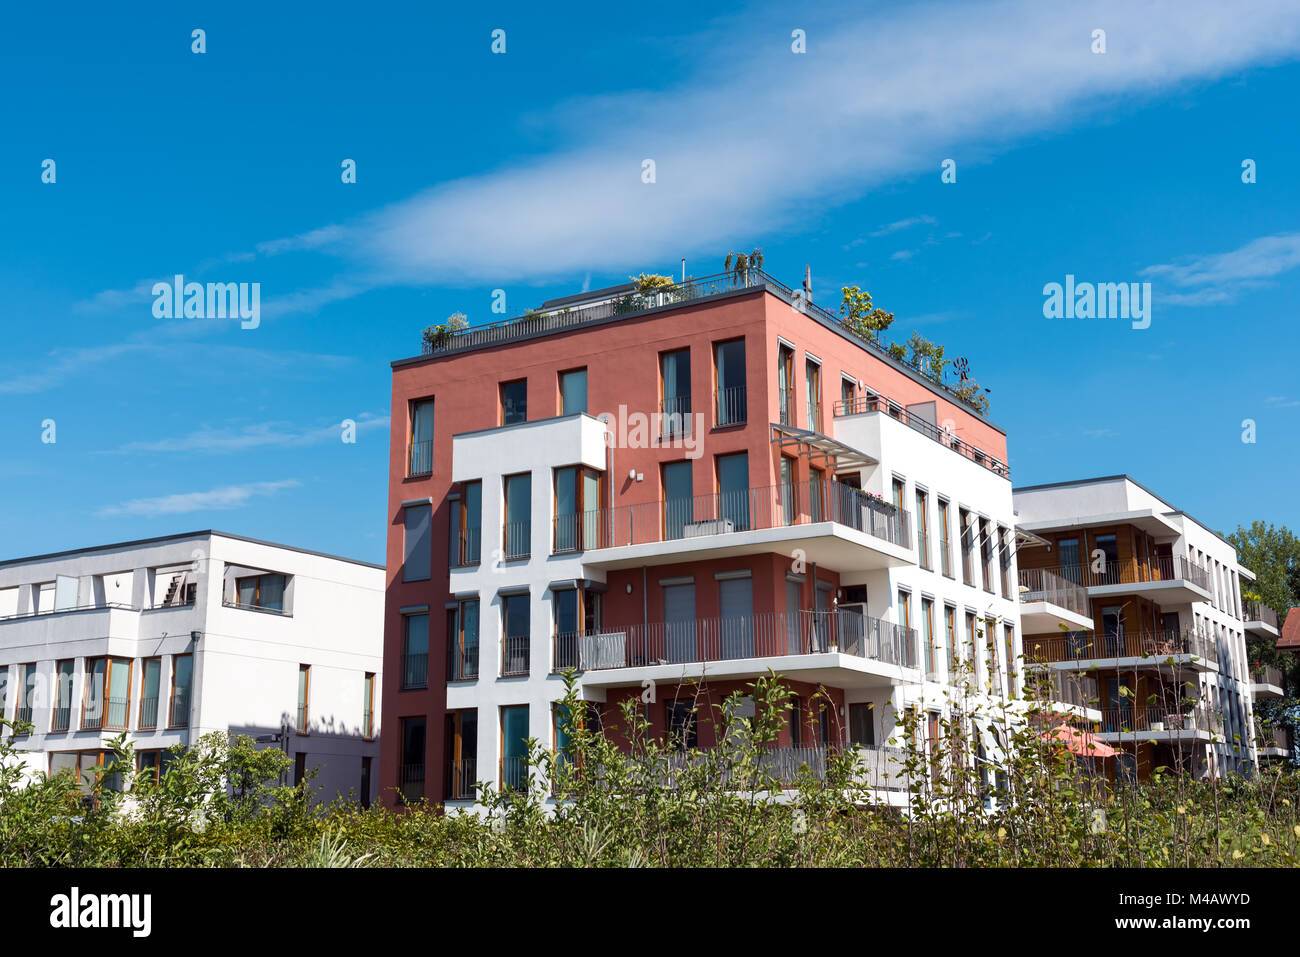 moderne stadth user gesehen in berlin deutschland stockfoto bild 174802193 alamy. Black Bedroom Furniture Sets. Home Design Ideas